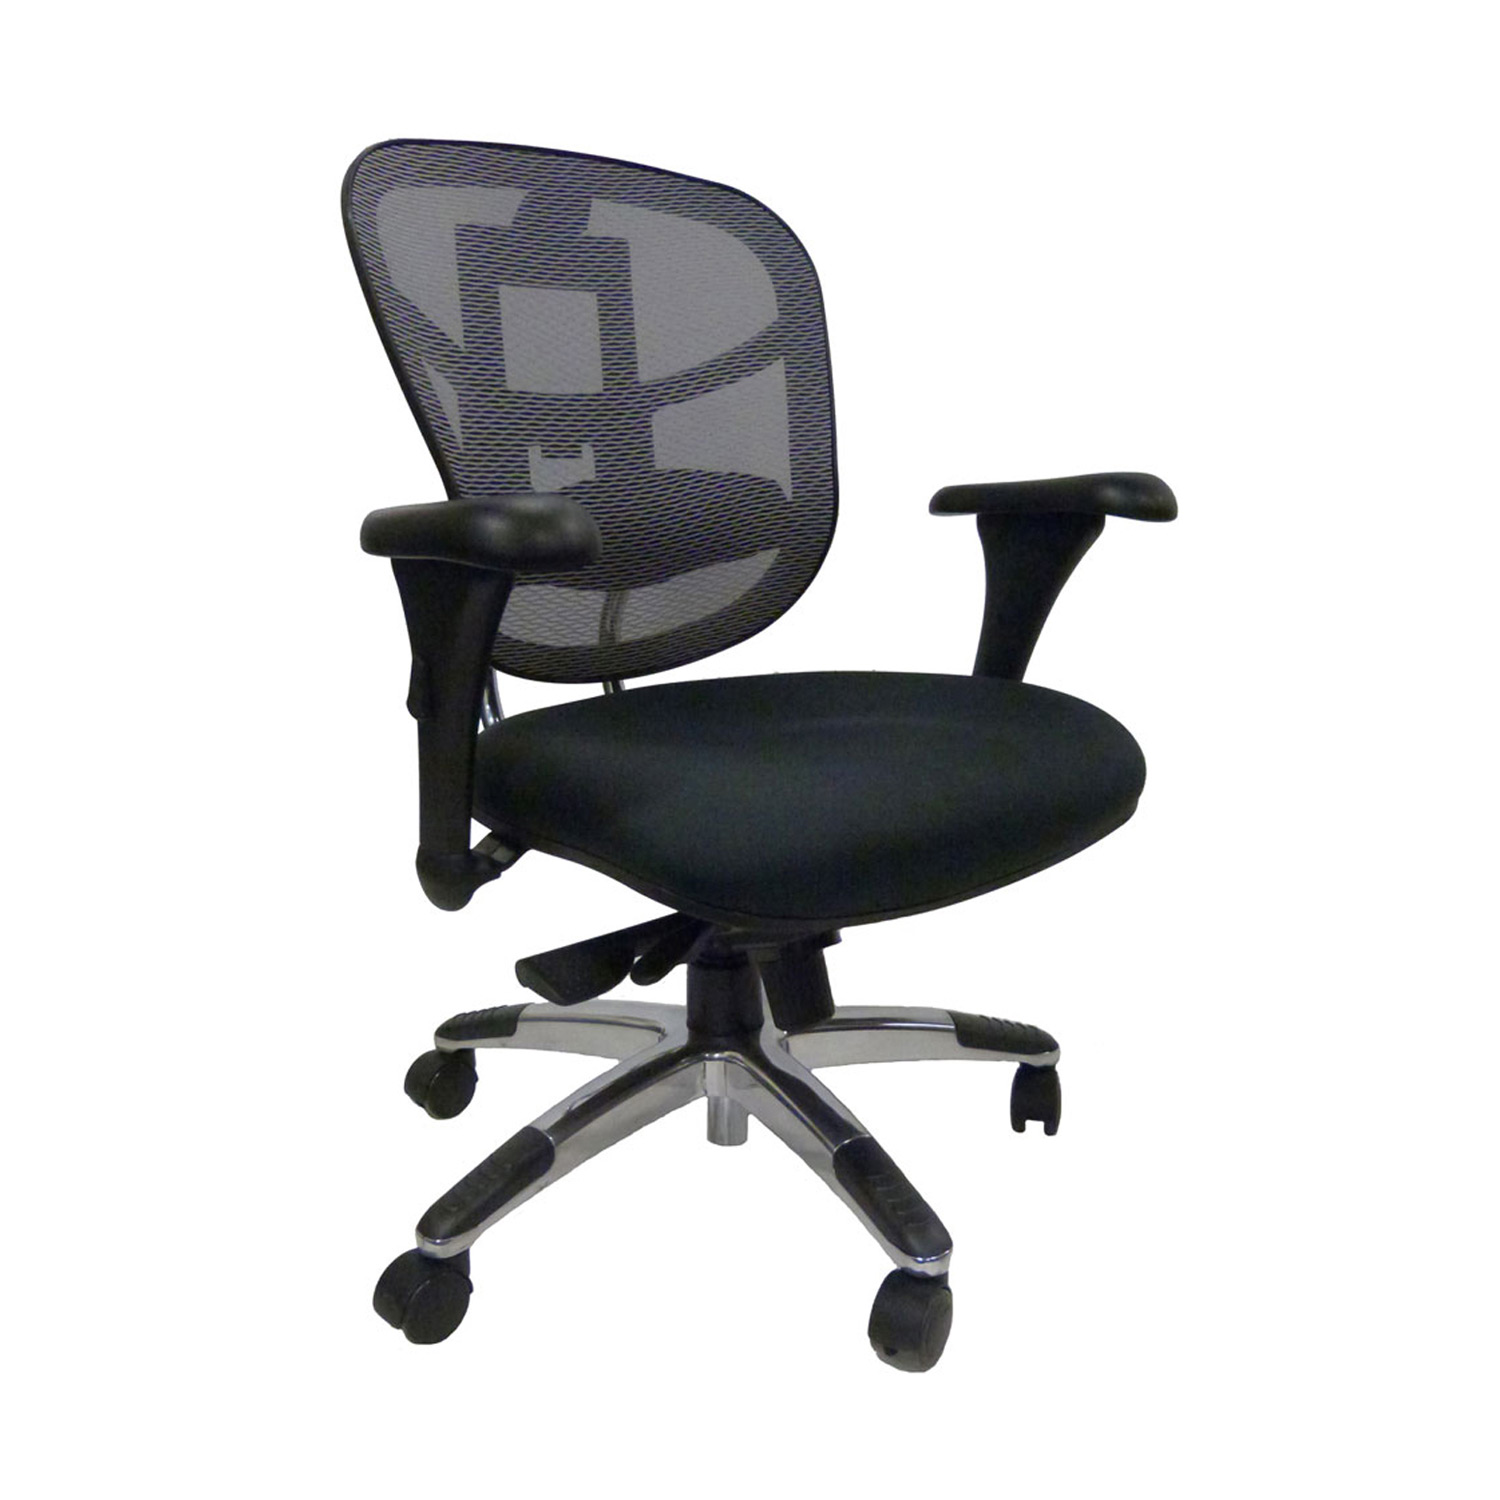 OPS Manager Chair #4008